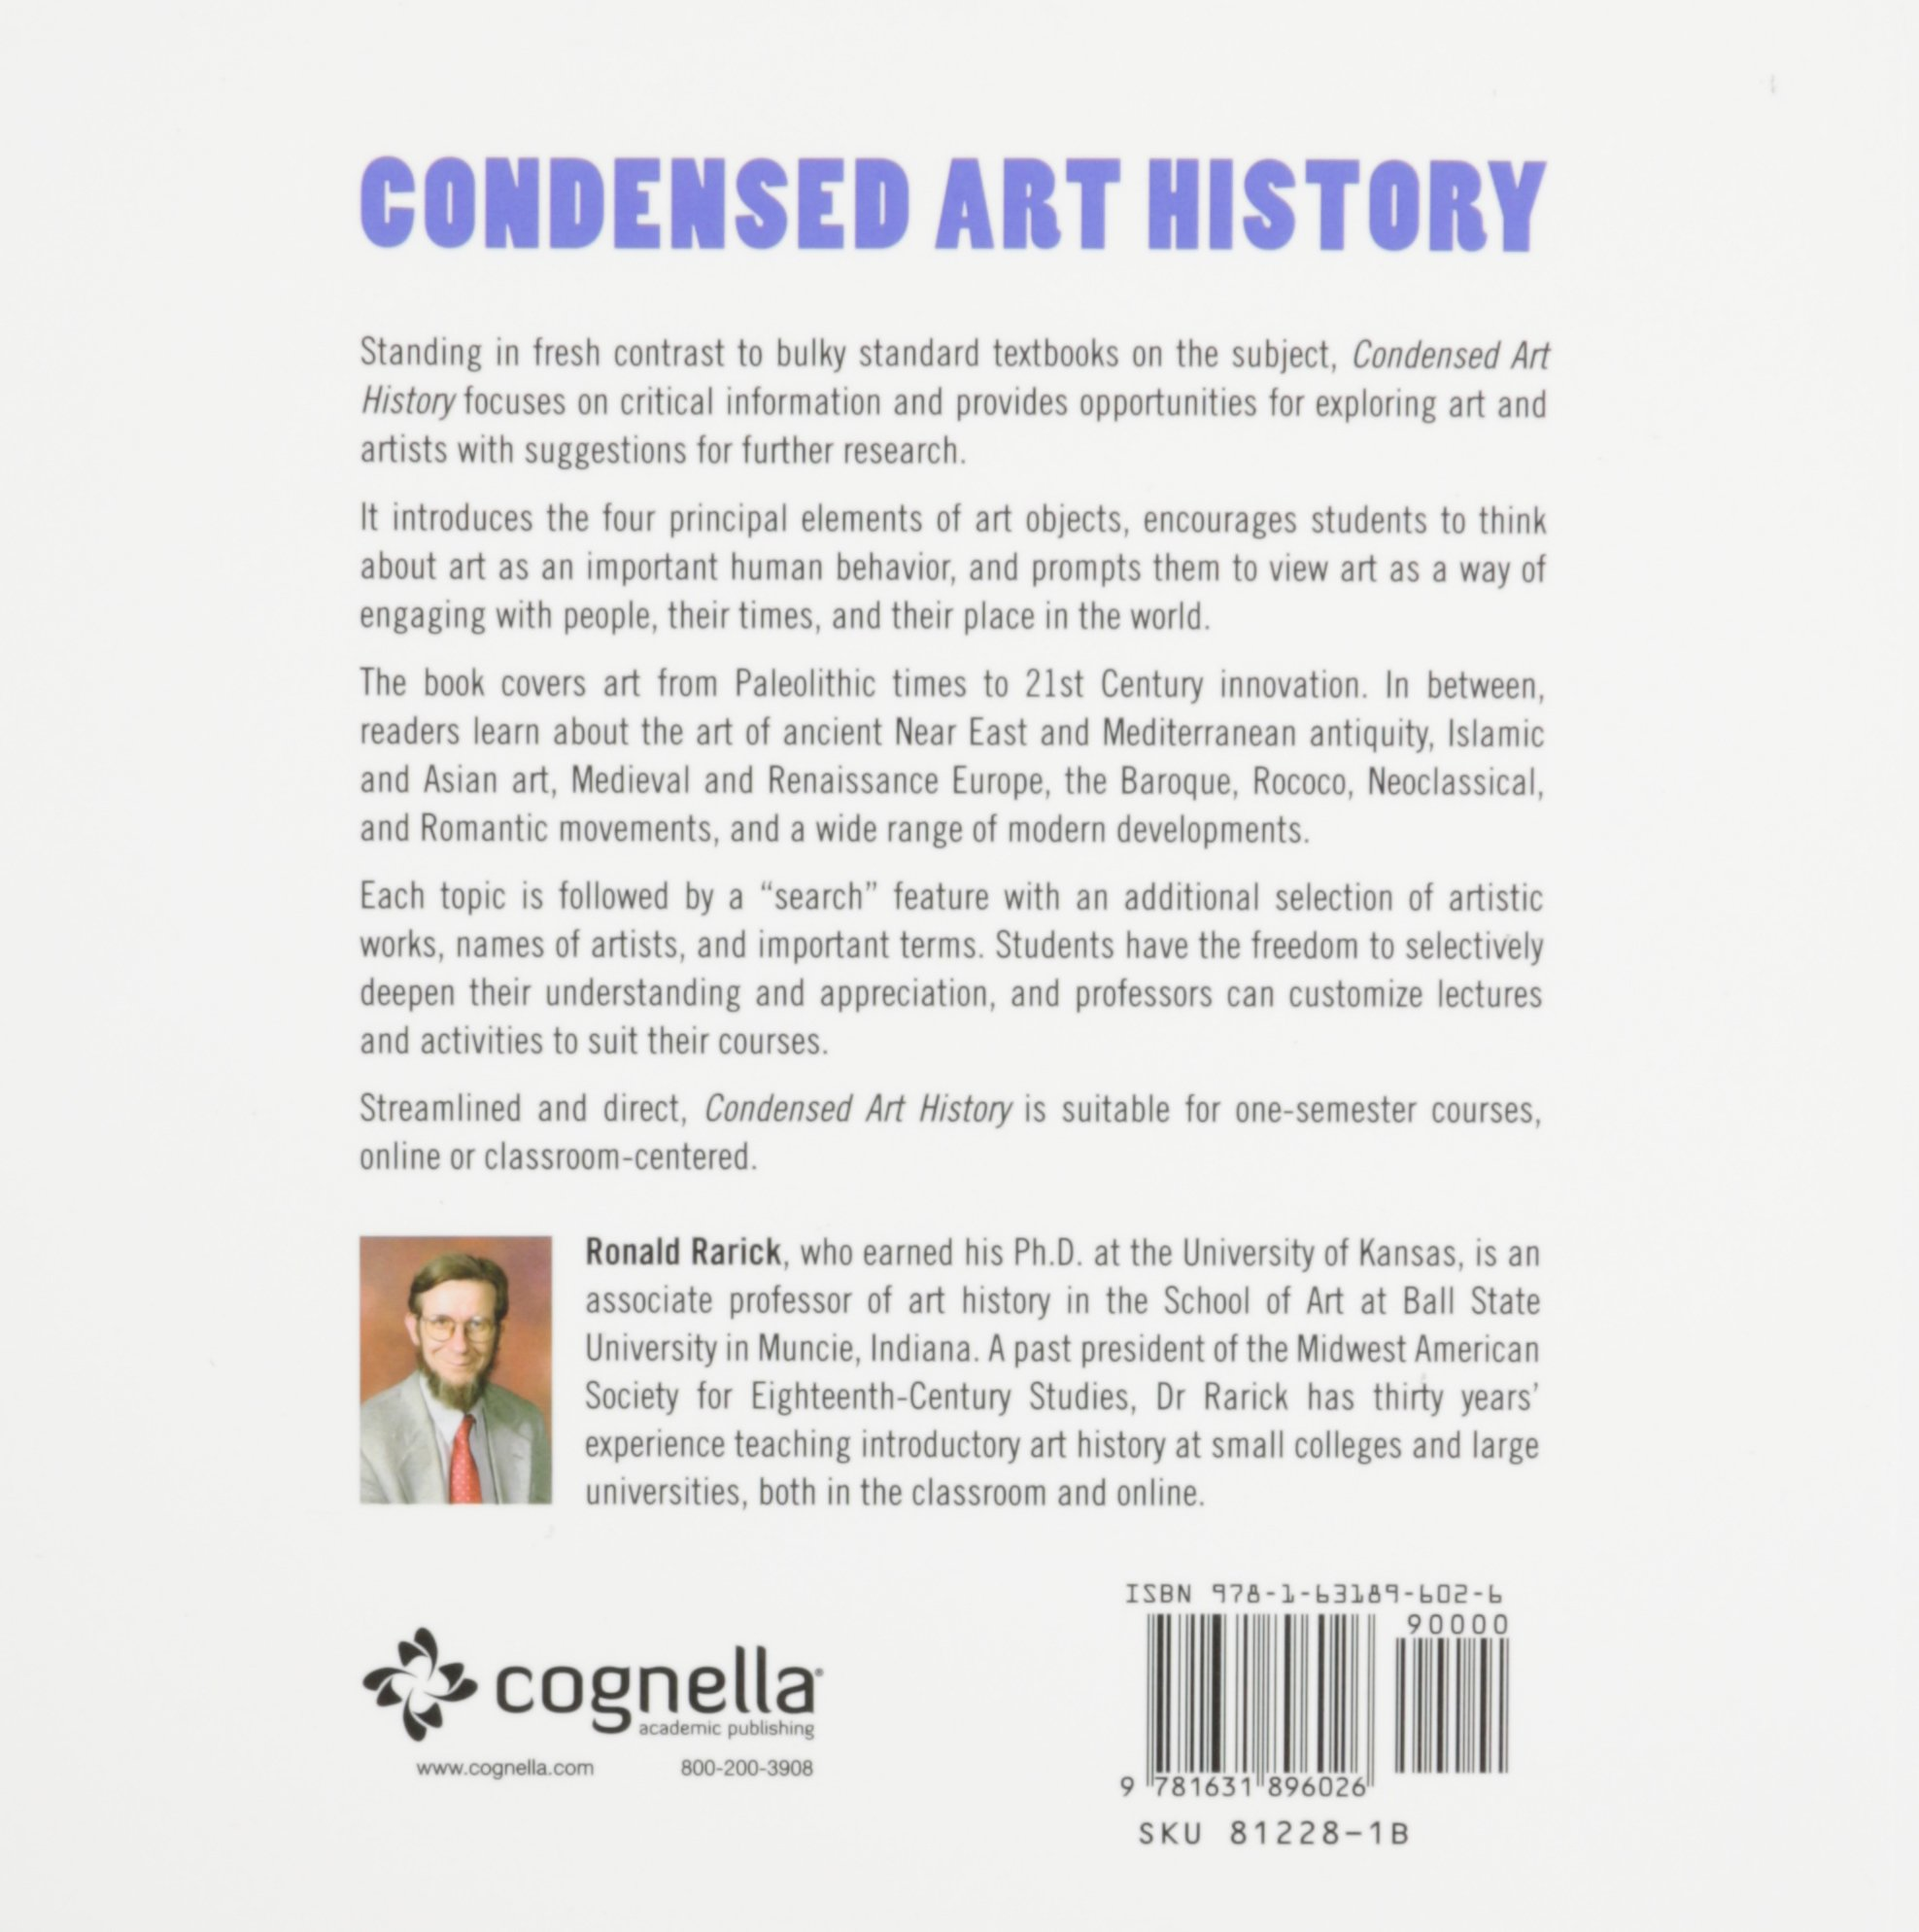 condensed art history first edition ronald rarick condensed art history first edition ronald rarick 9781631896026 com books